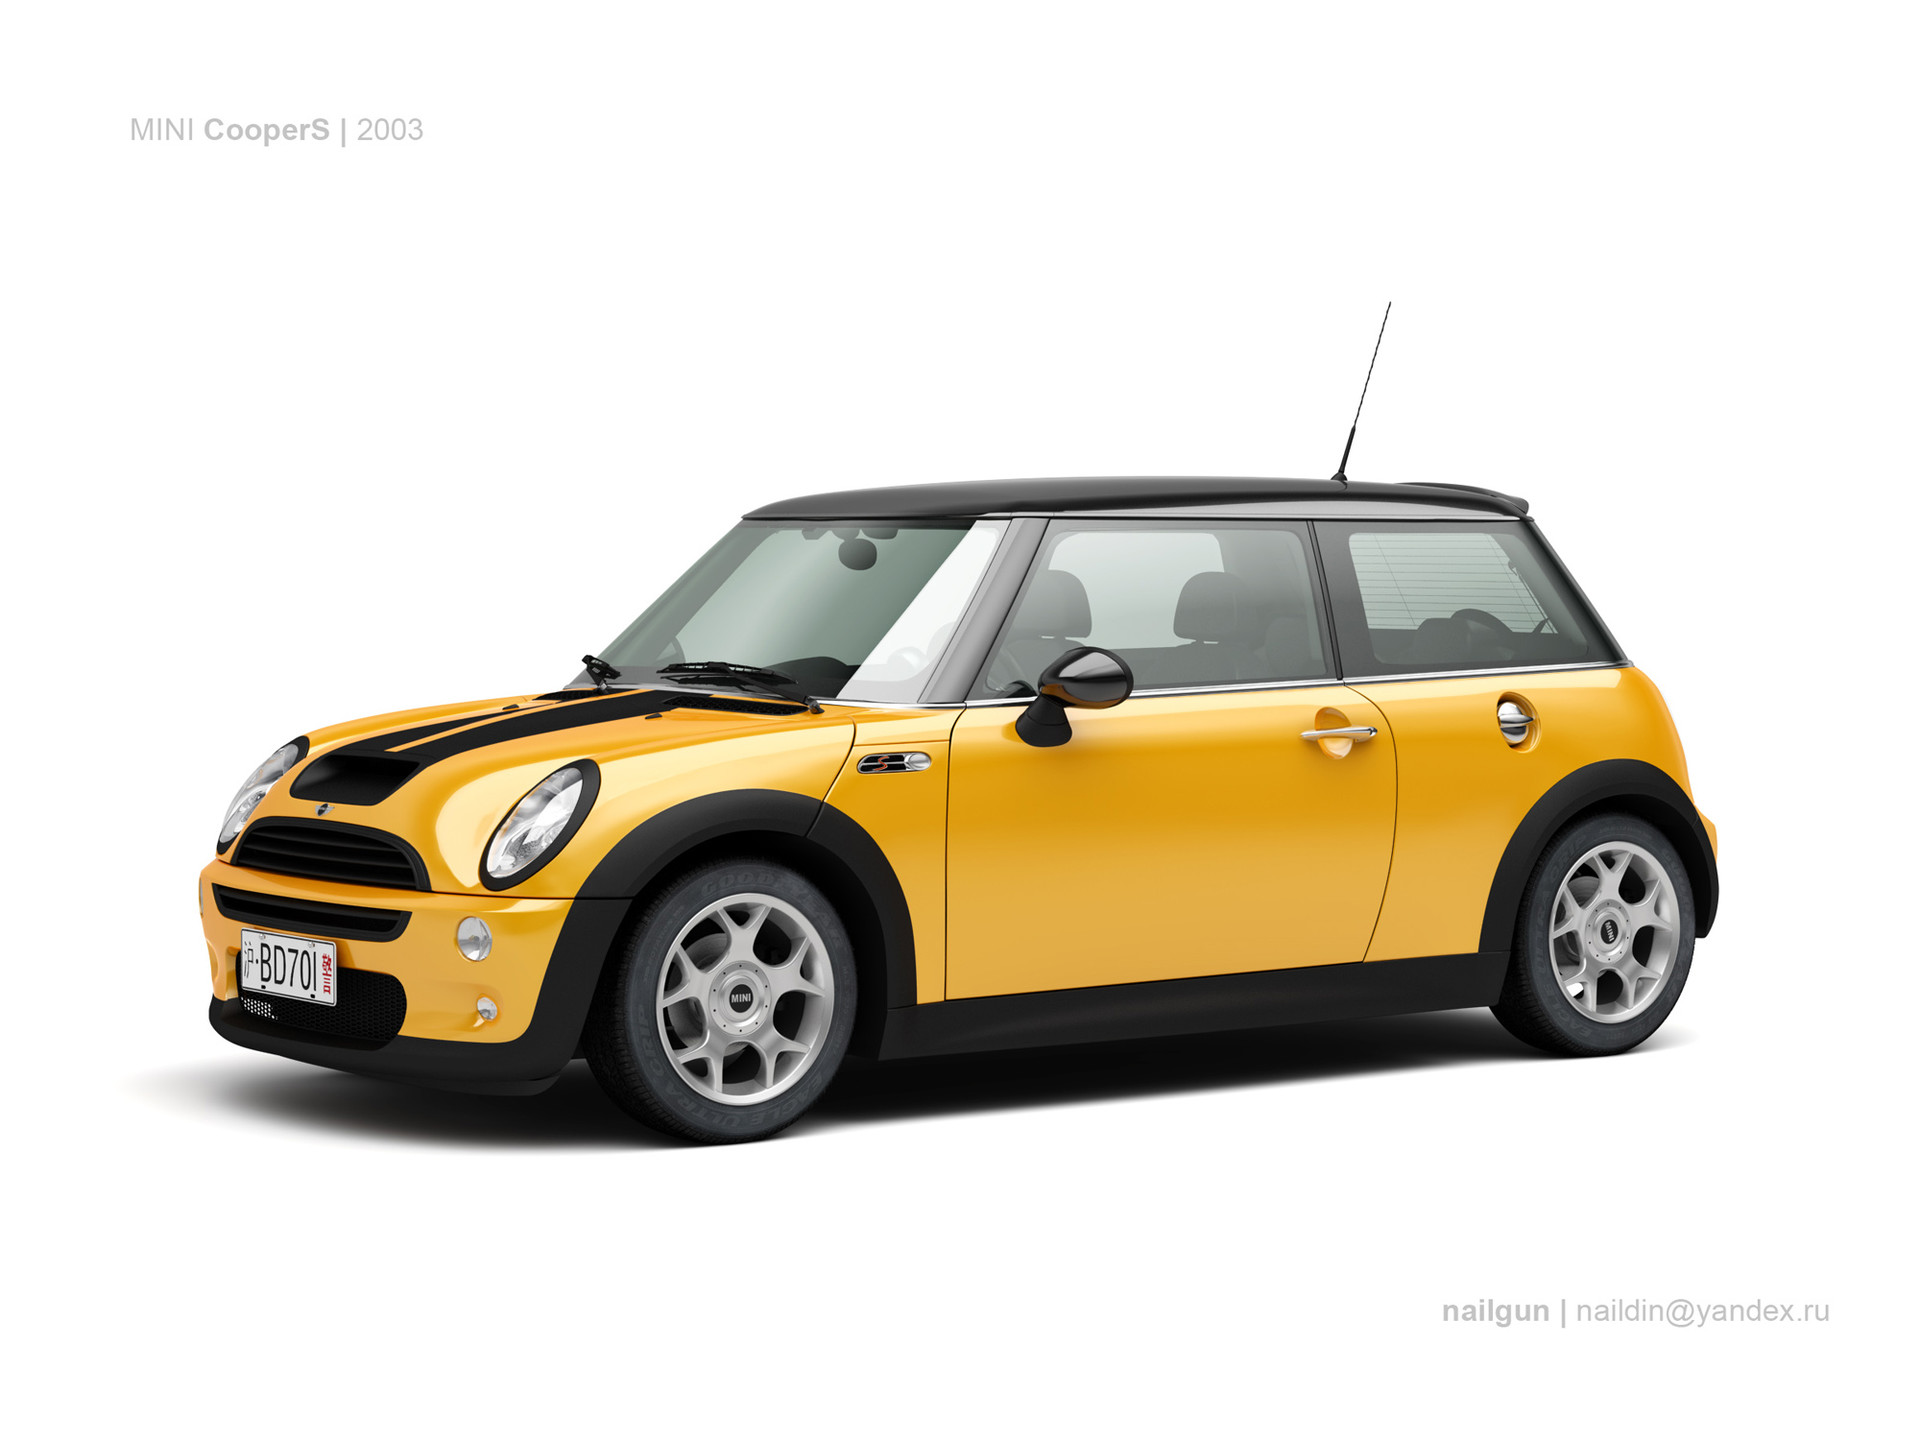 Nail khusnutdinov gb mini coopers 03 0